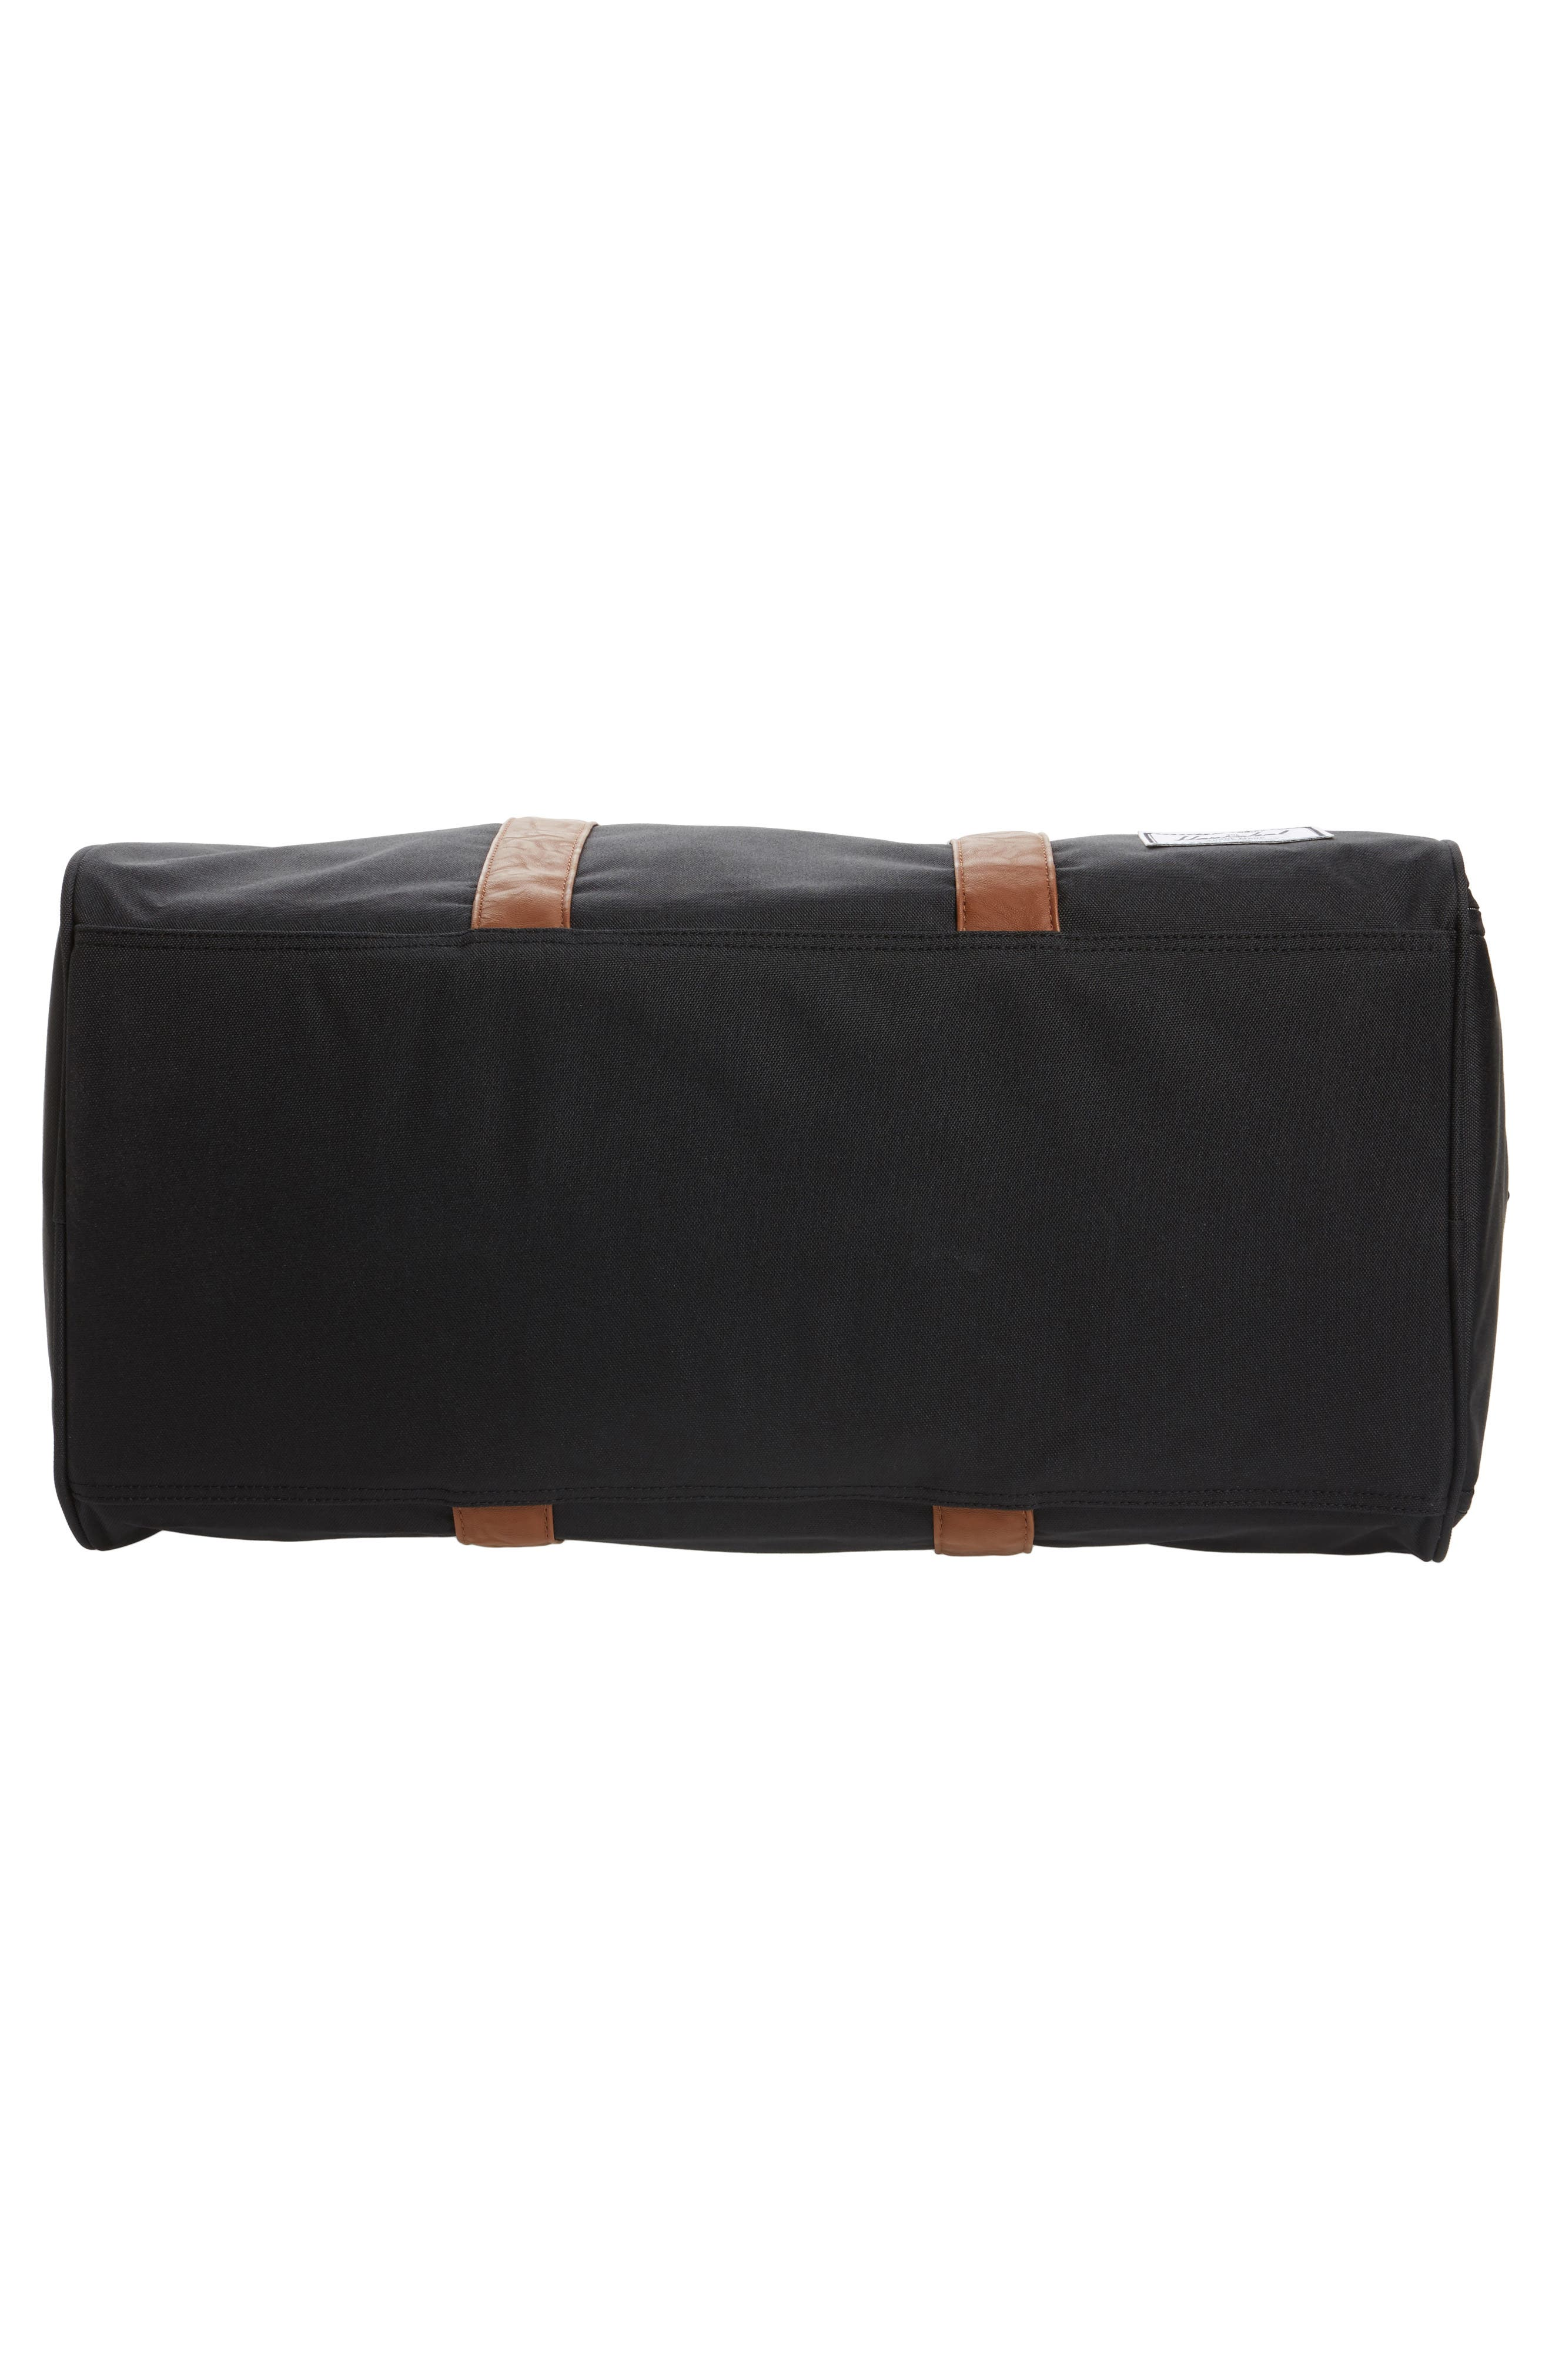 'Novel' Duffel Bag,                             Alternate thumbnail 5, color,                             BLACK/ TAN